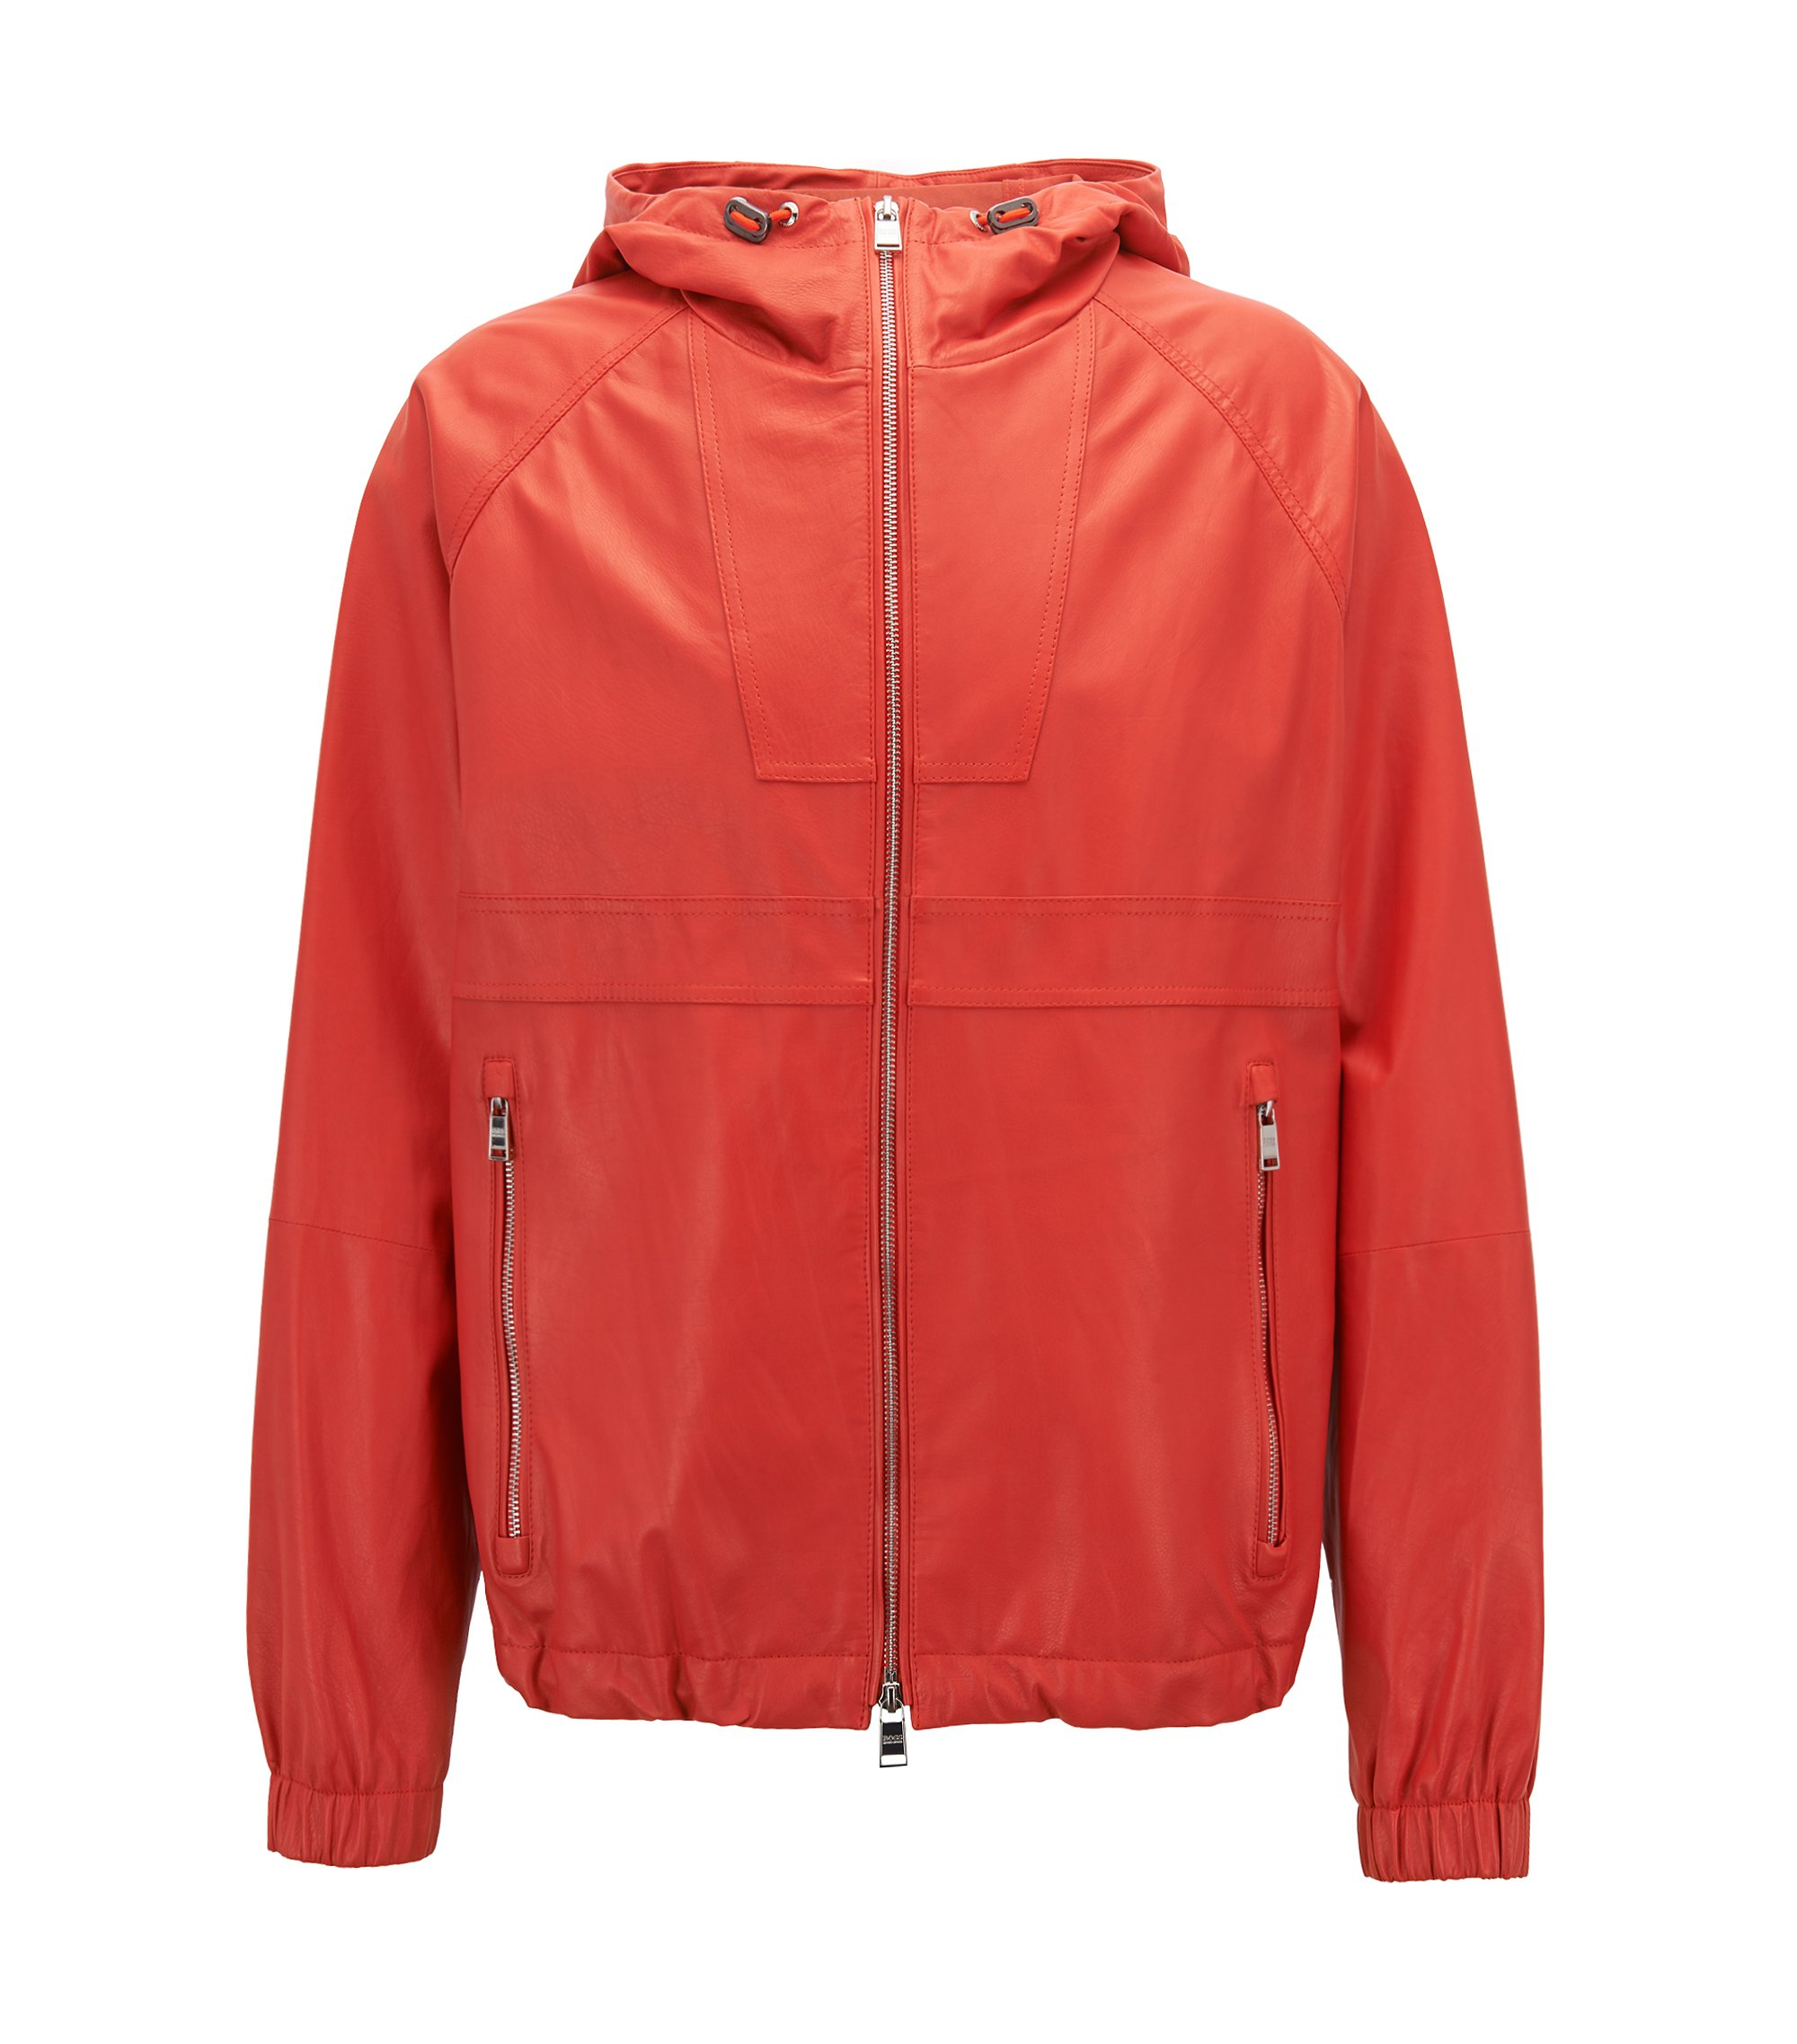 Leichter Relaxed-Fit Windbreaker aus Nappaleder, Orange